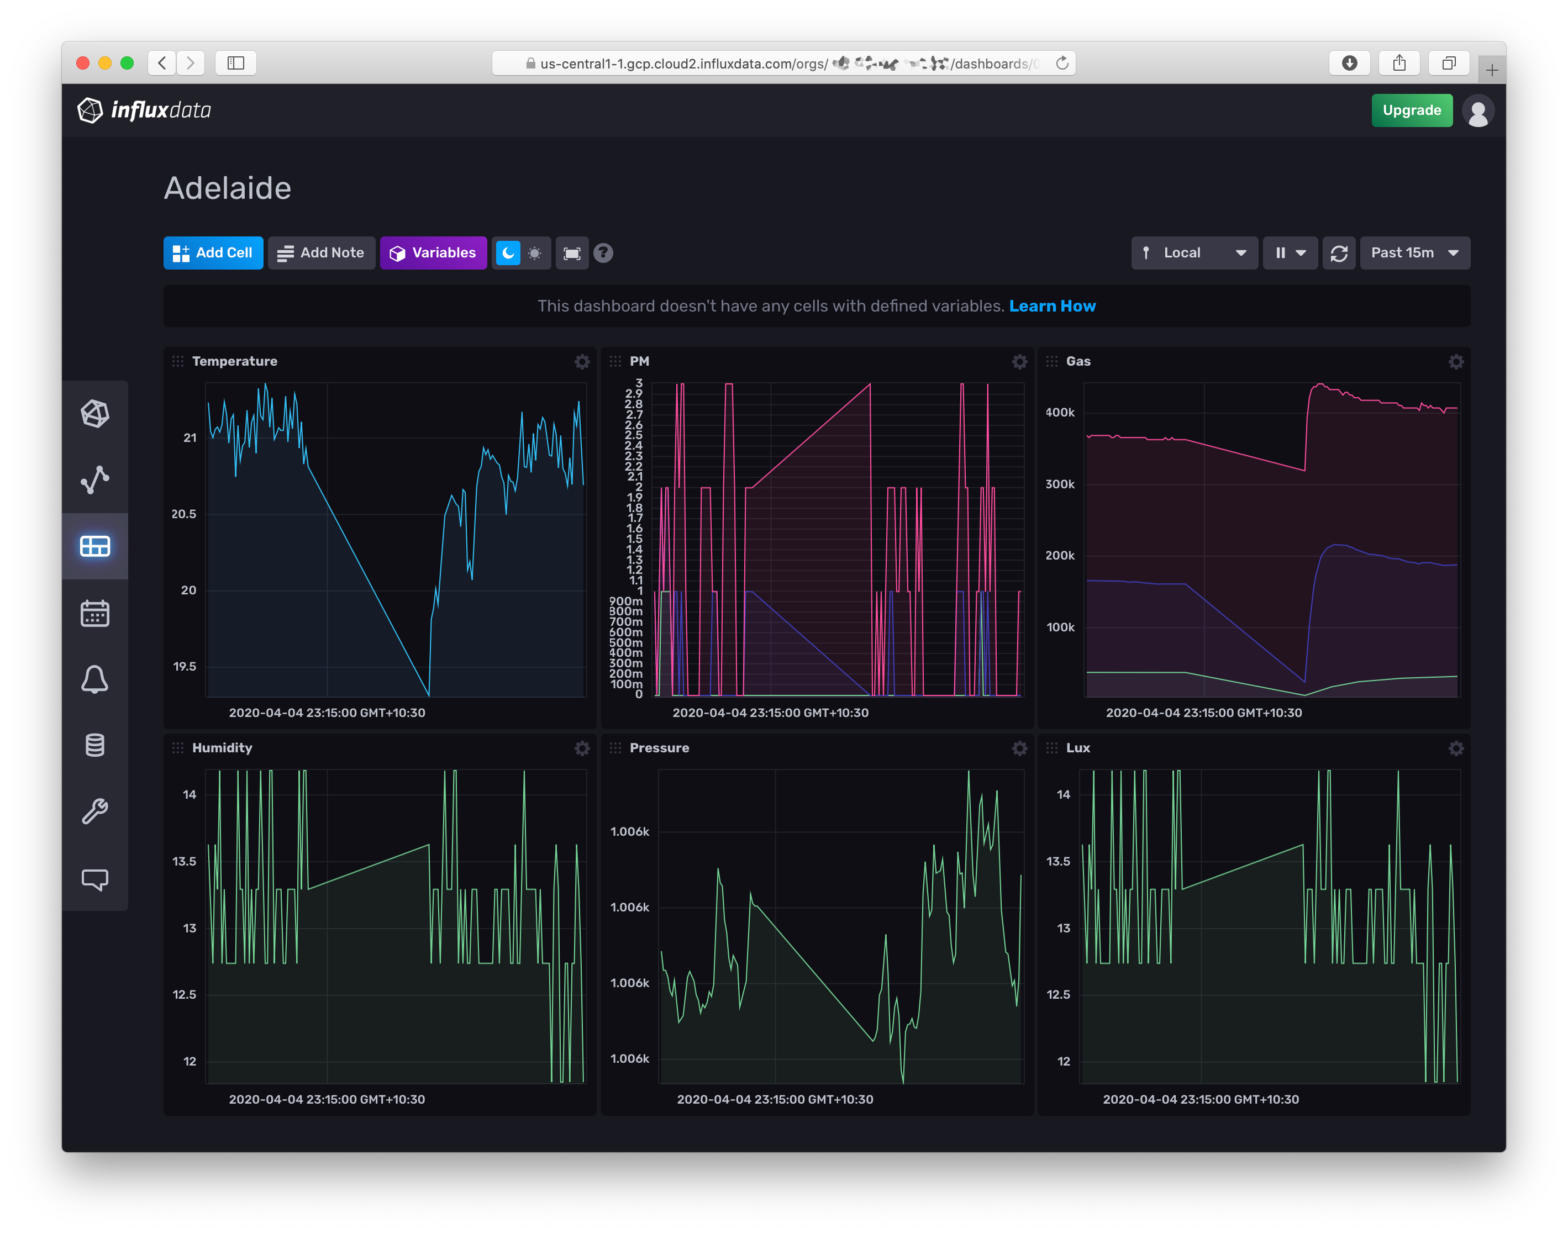 Success! Enviro+ is now posting its sensor data to InfluxDB Cloud.